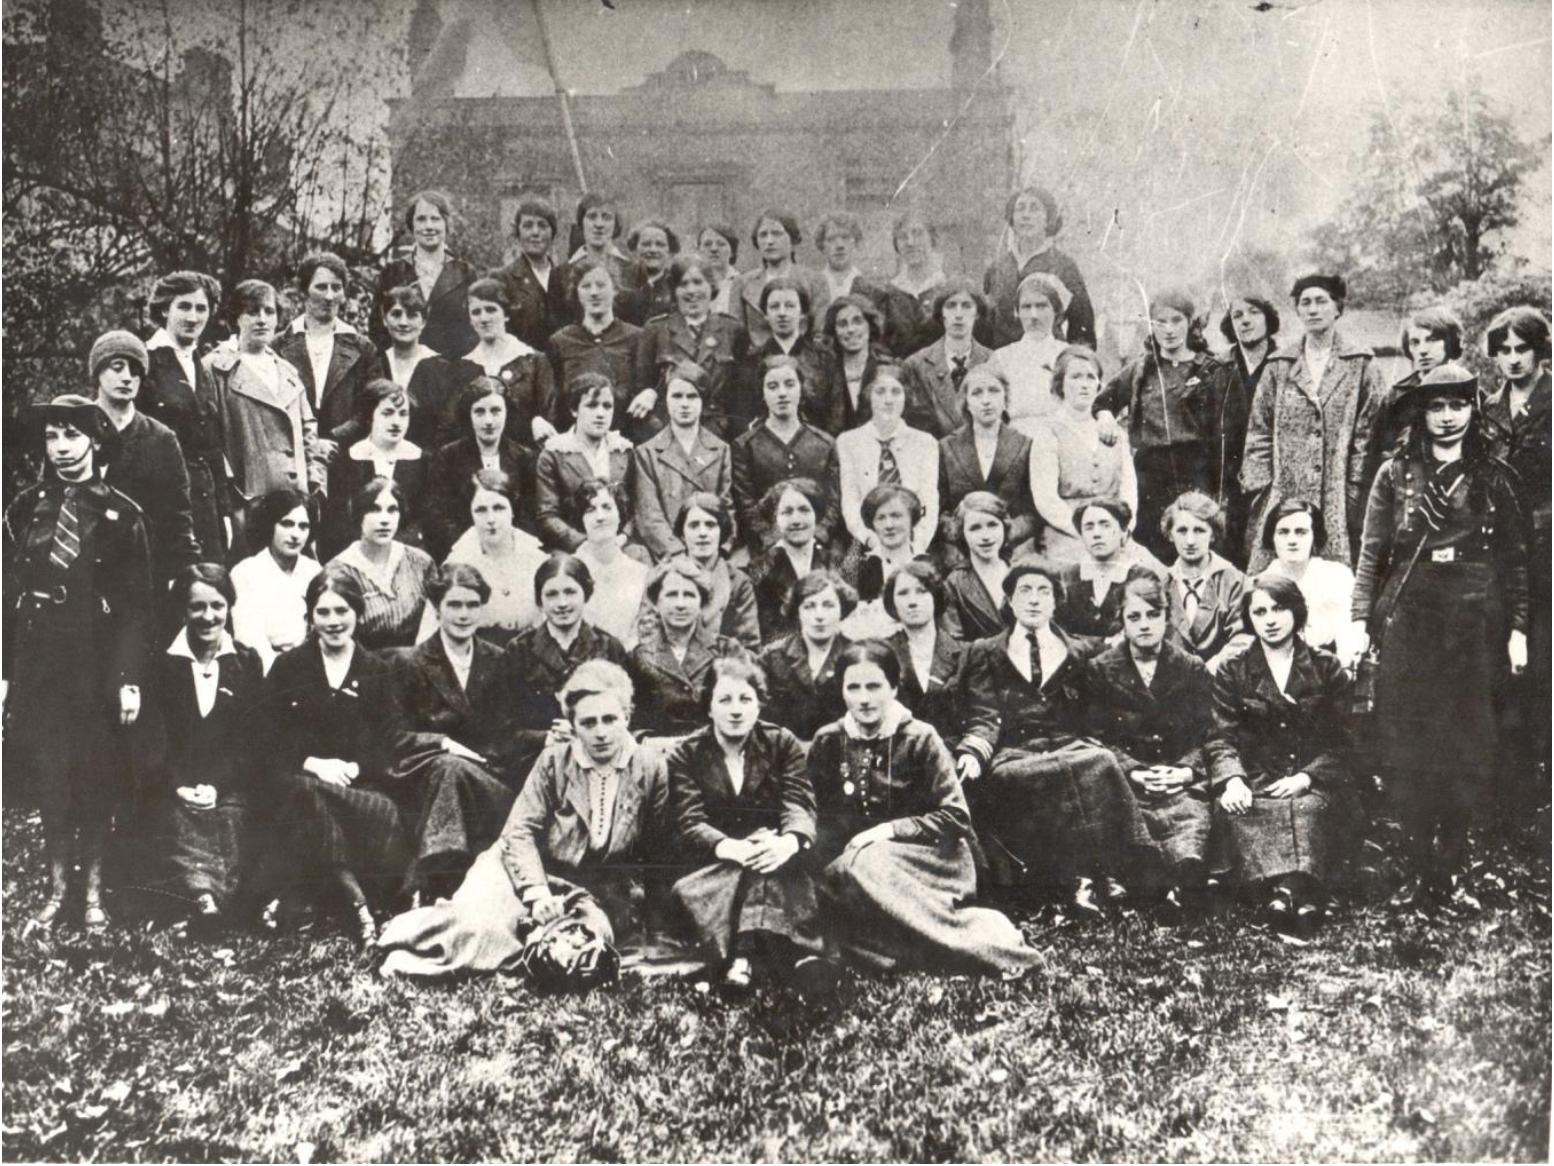 Photograph of the women who took part in the 1916 rising in the garden of Ely O'Carroll's house, 1916. Courtesy of Kilmainham Gaol Museum.